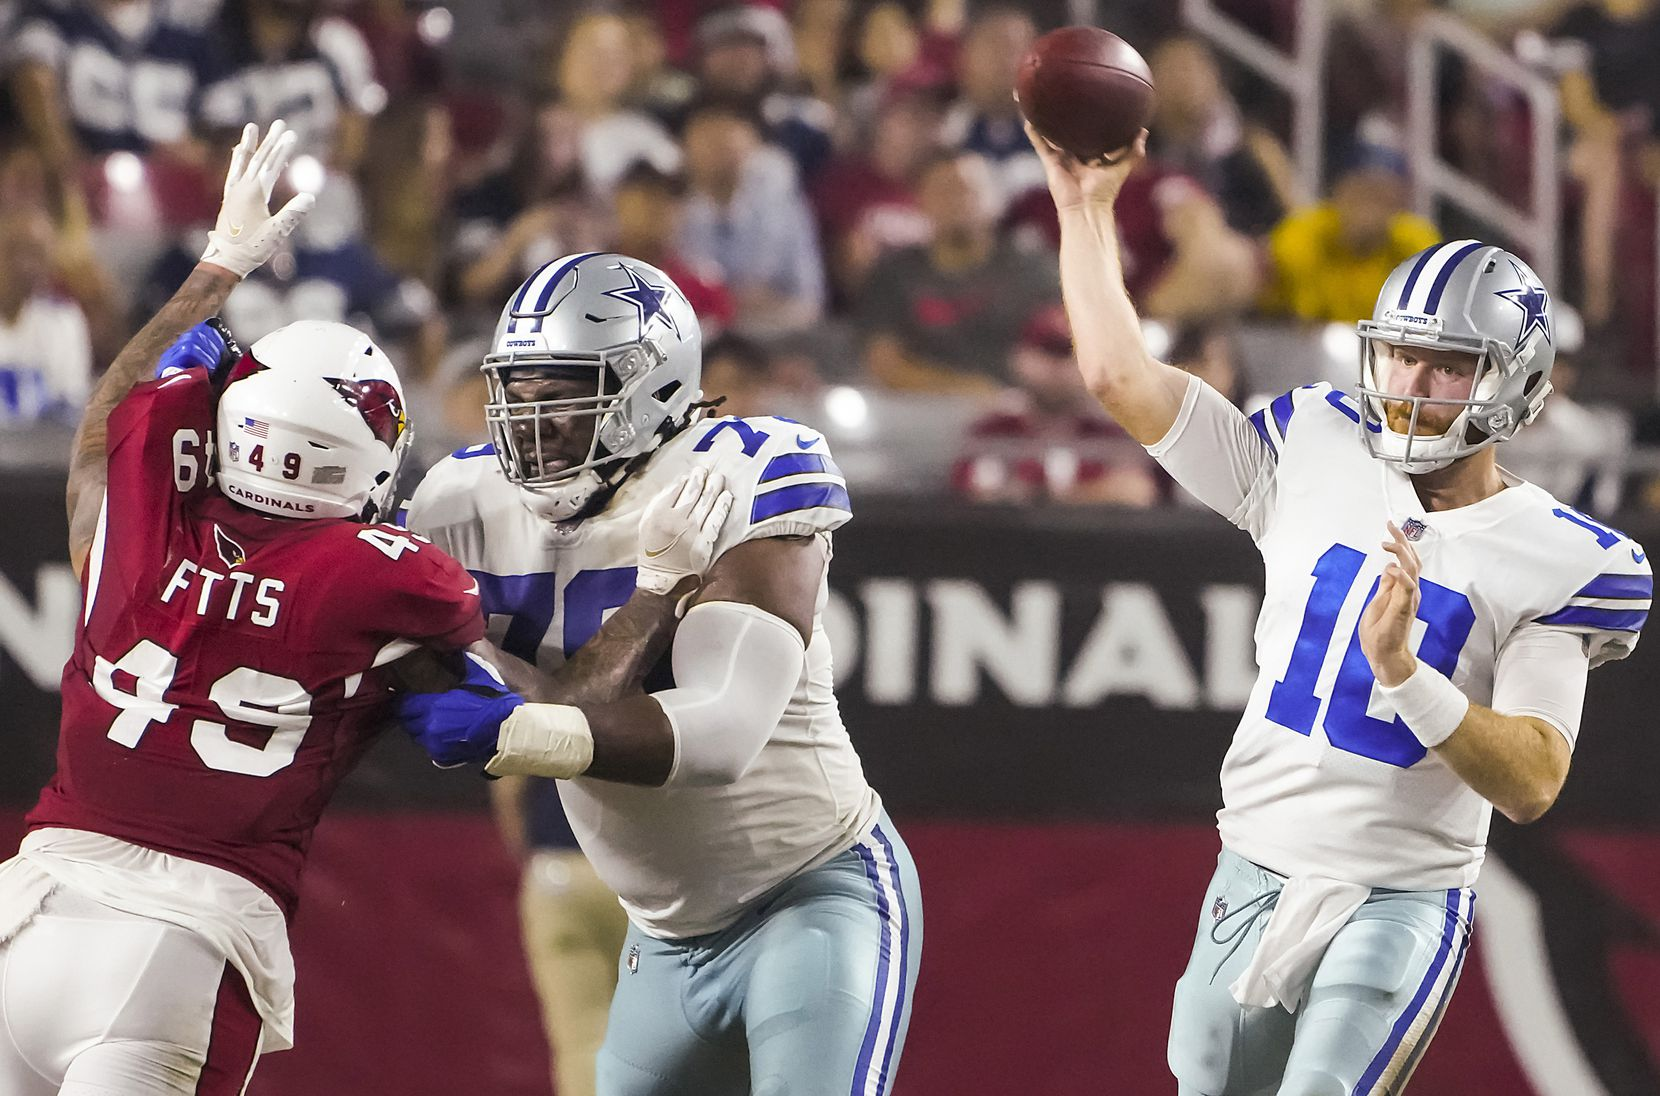 Dallas Cowboys quarterback Cooper Rush (10) throws a pass as tackle Ty Nsekhe (79) blocks against Arizona Cardinals linebacker Kylie Fitts (49) during the second quarter of an NFL football game at State Farm Stadium on Friday, Aug. 13, 2021, in Glendale, Ariz.